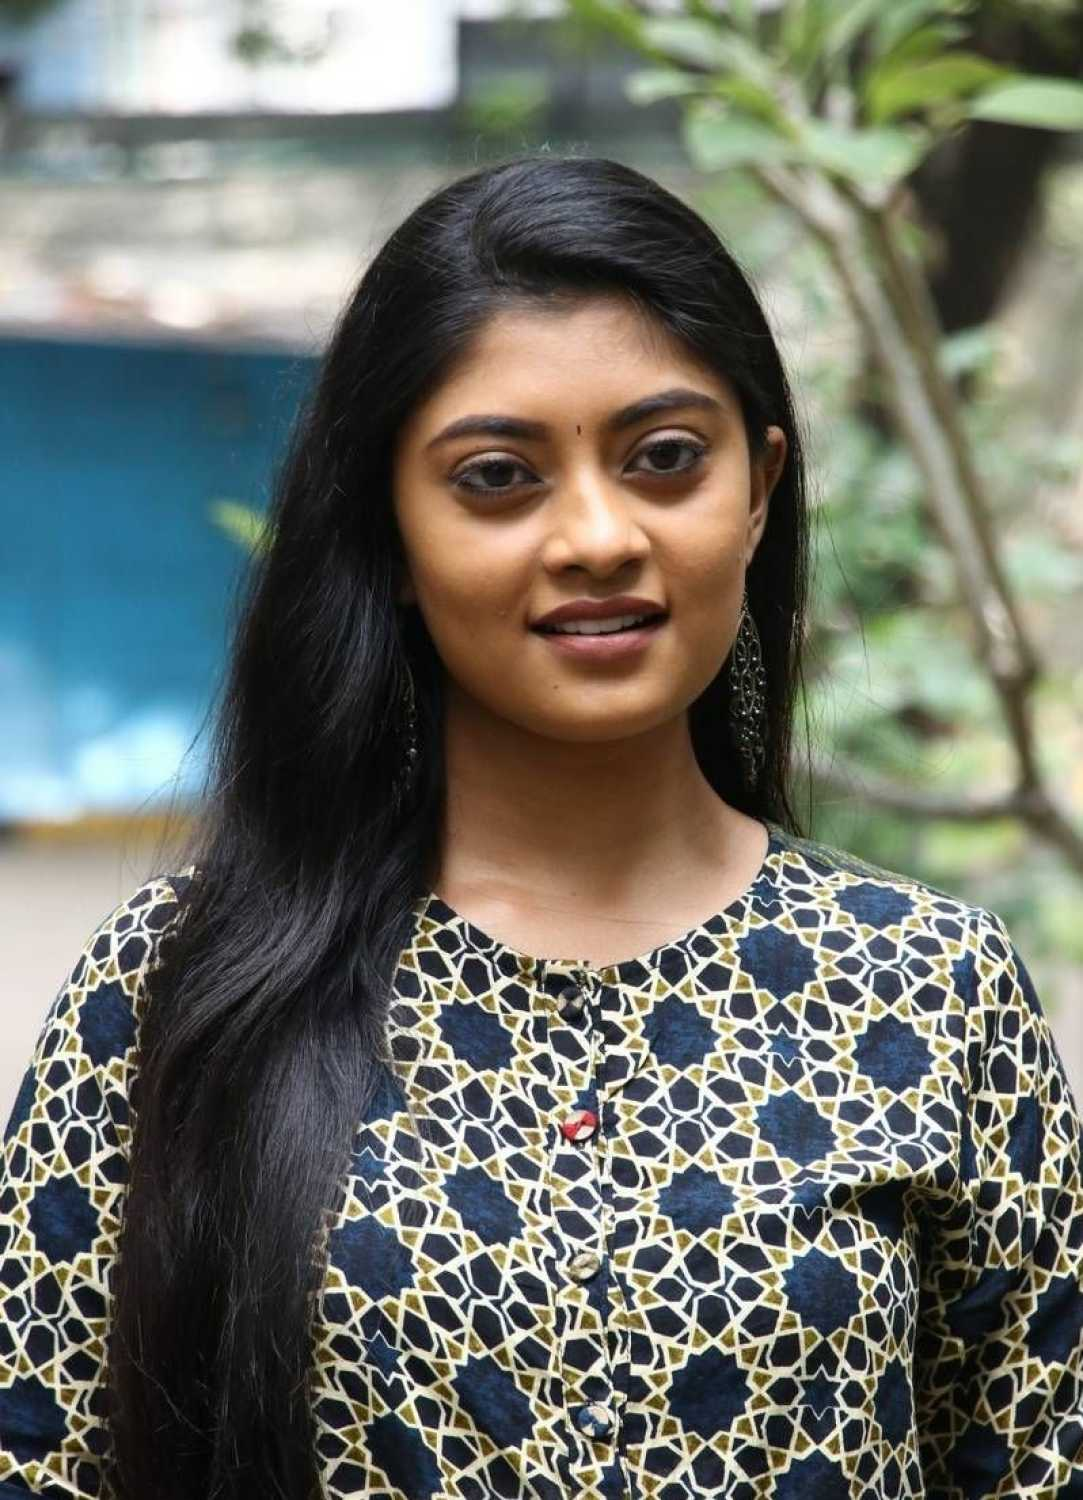 Ammu Abhirami Profile  Contact Details (Phone number, Instagram, Twitter, Email address)